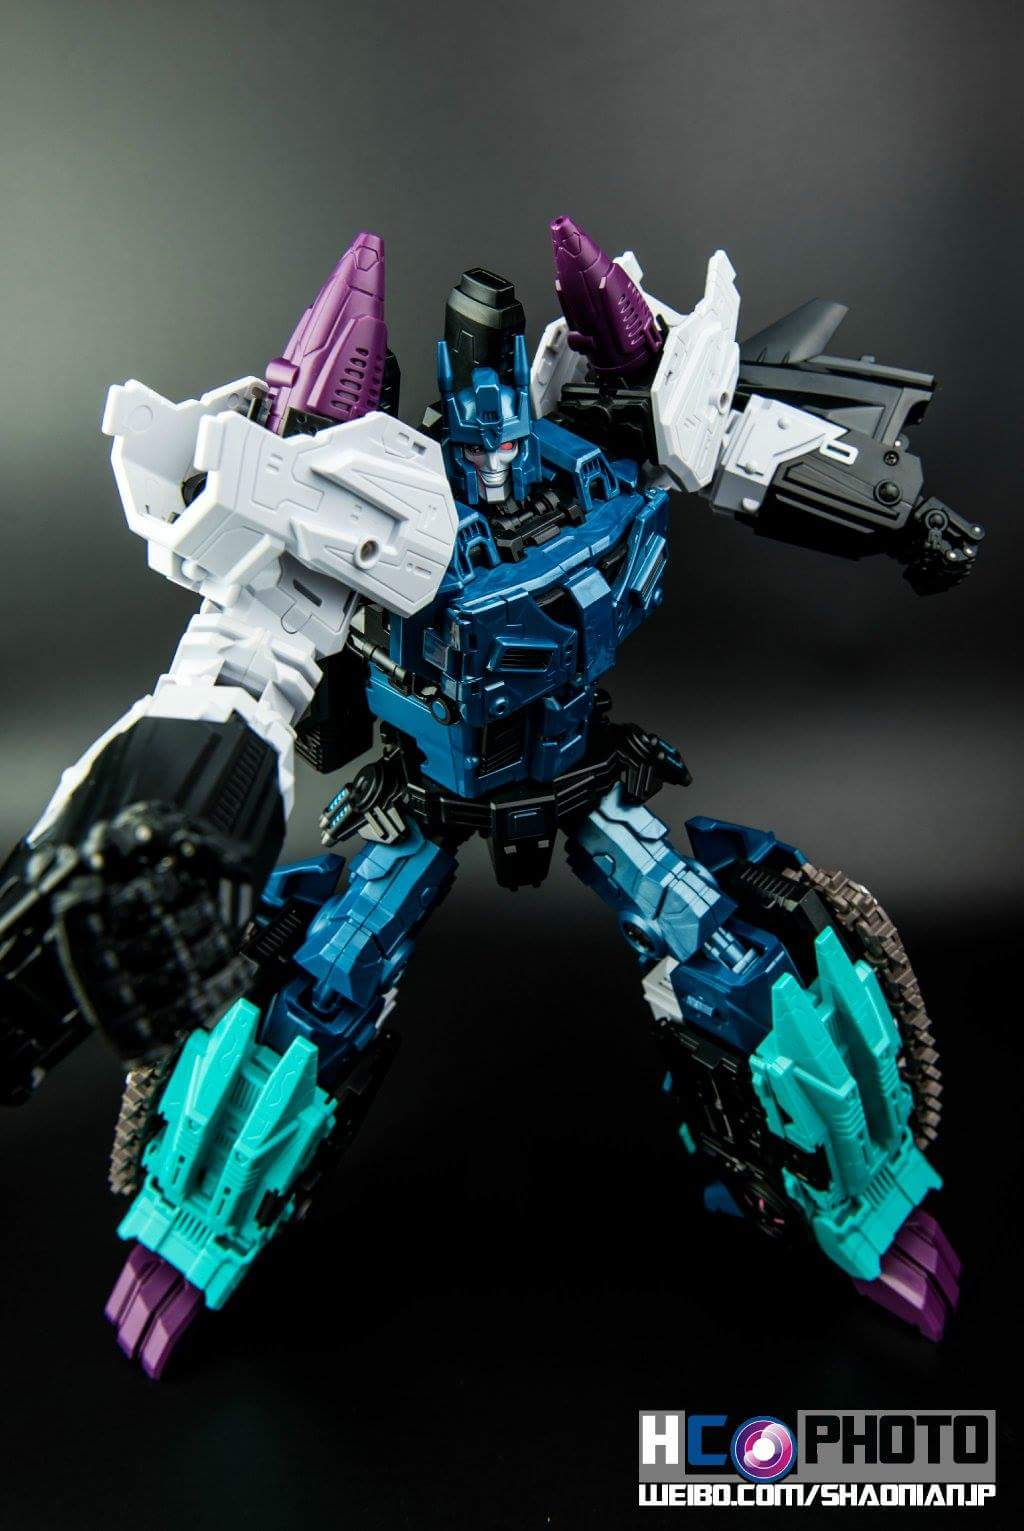 [Mastermind Creations] Produit Tiers - R-17 Carnifex - aka Overlord (TF Masterforce) - Page 3 Cl6LQGW7